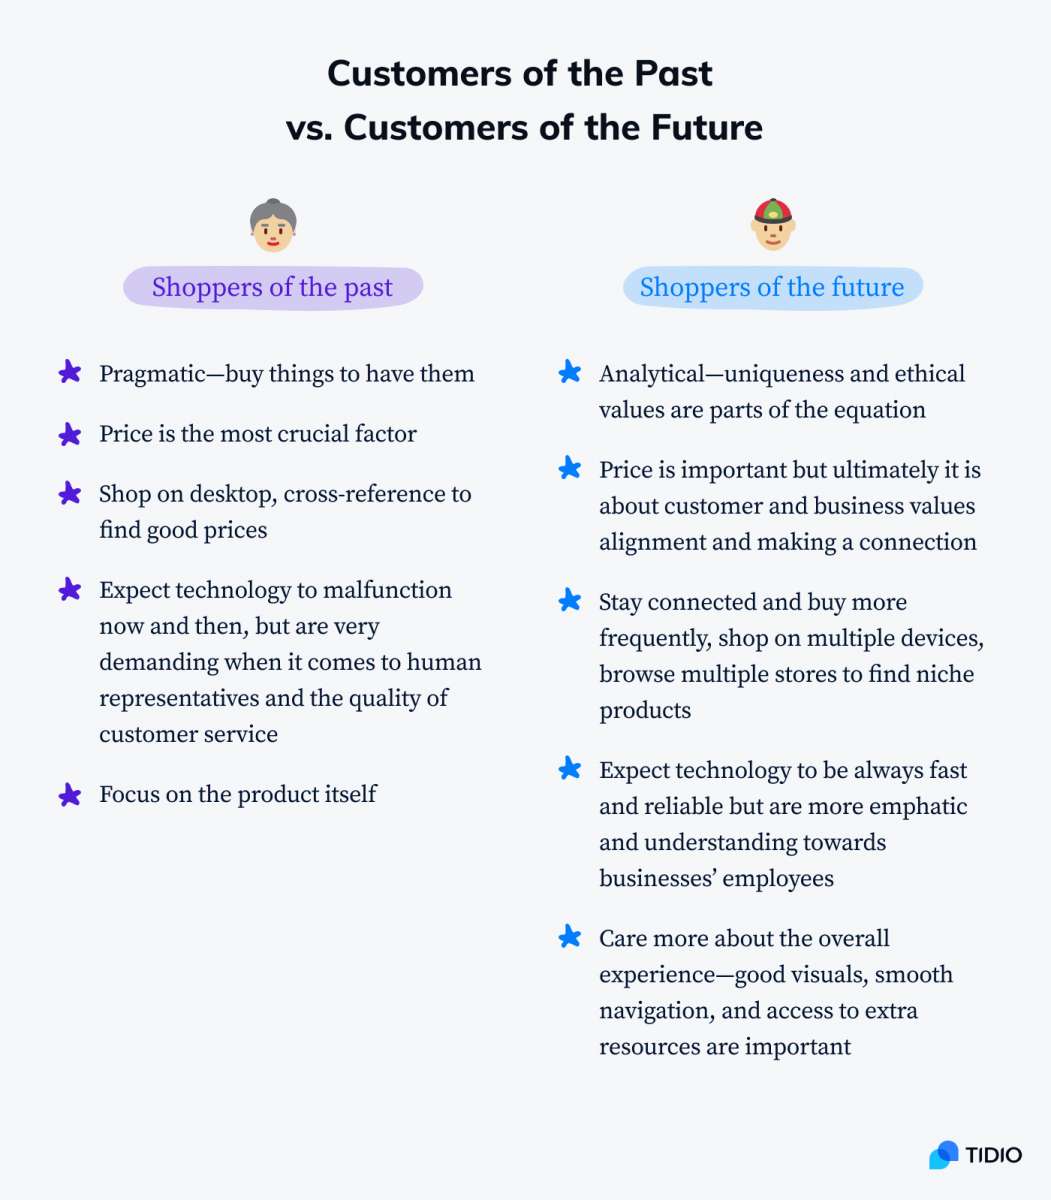 Customers of the past vs. customers of the future